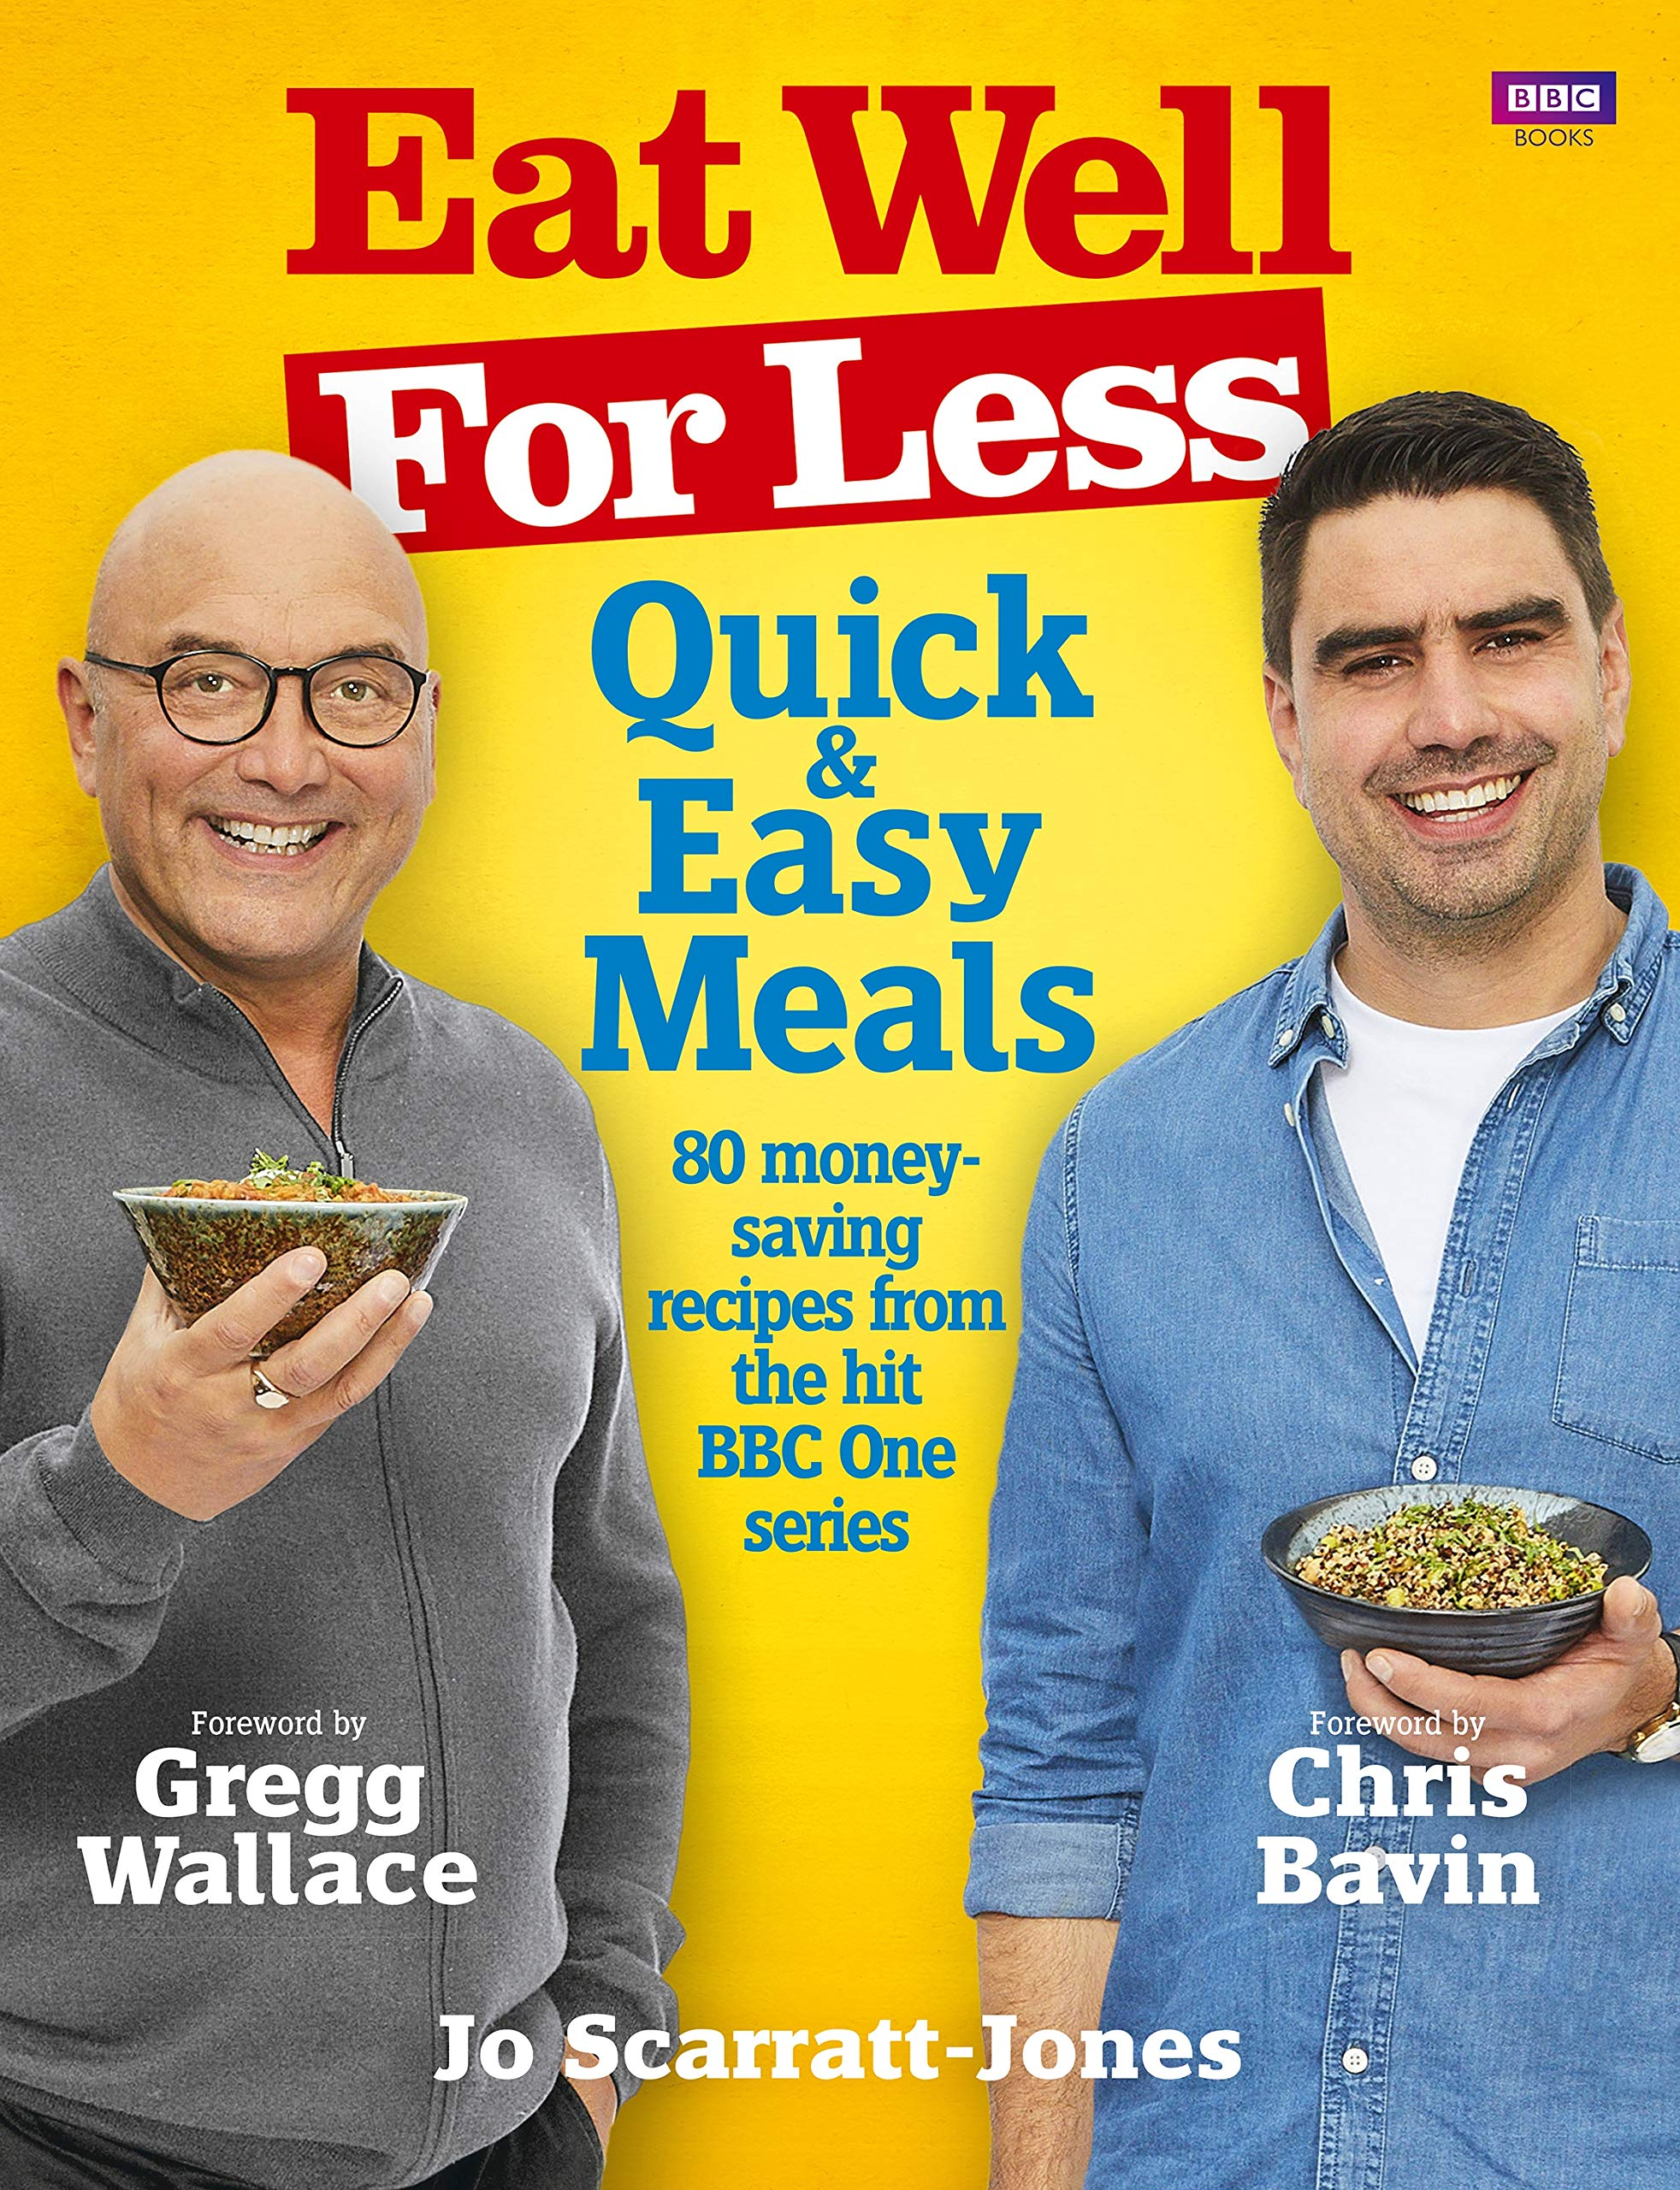 Eat well for less quick and easy meals amazon jo scarratt eat well for less quick and easy meals amazon jo scarratt jones gregg wallace chris bavin 9781785942853 books forumfinder Image collections